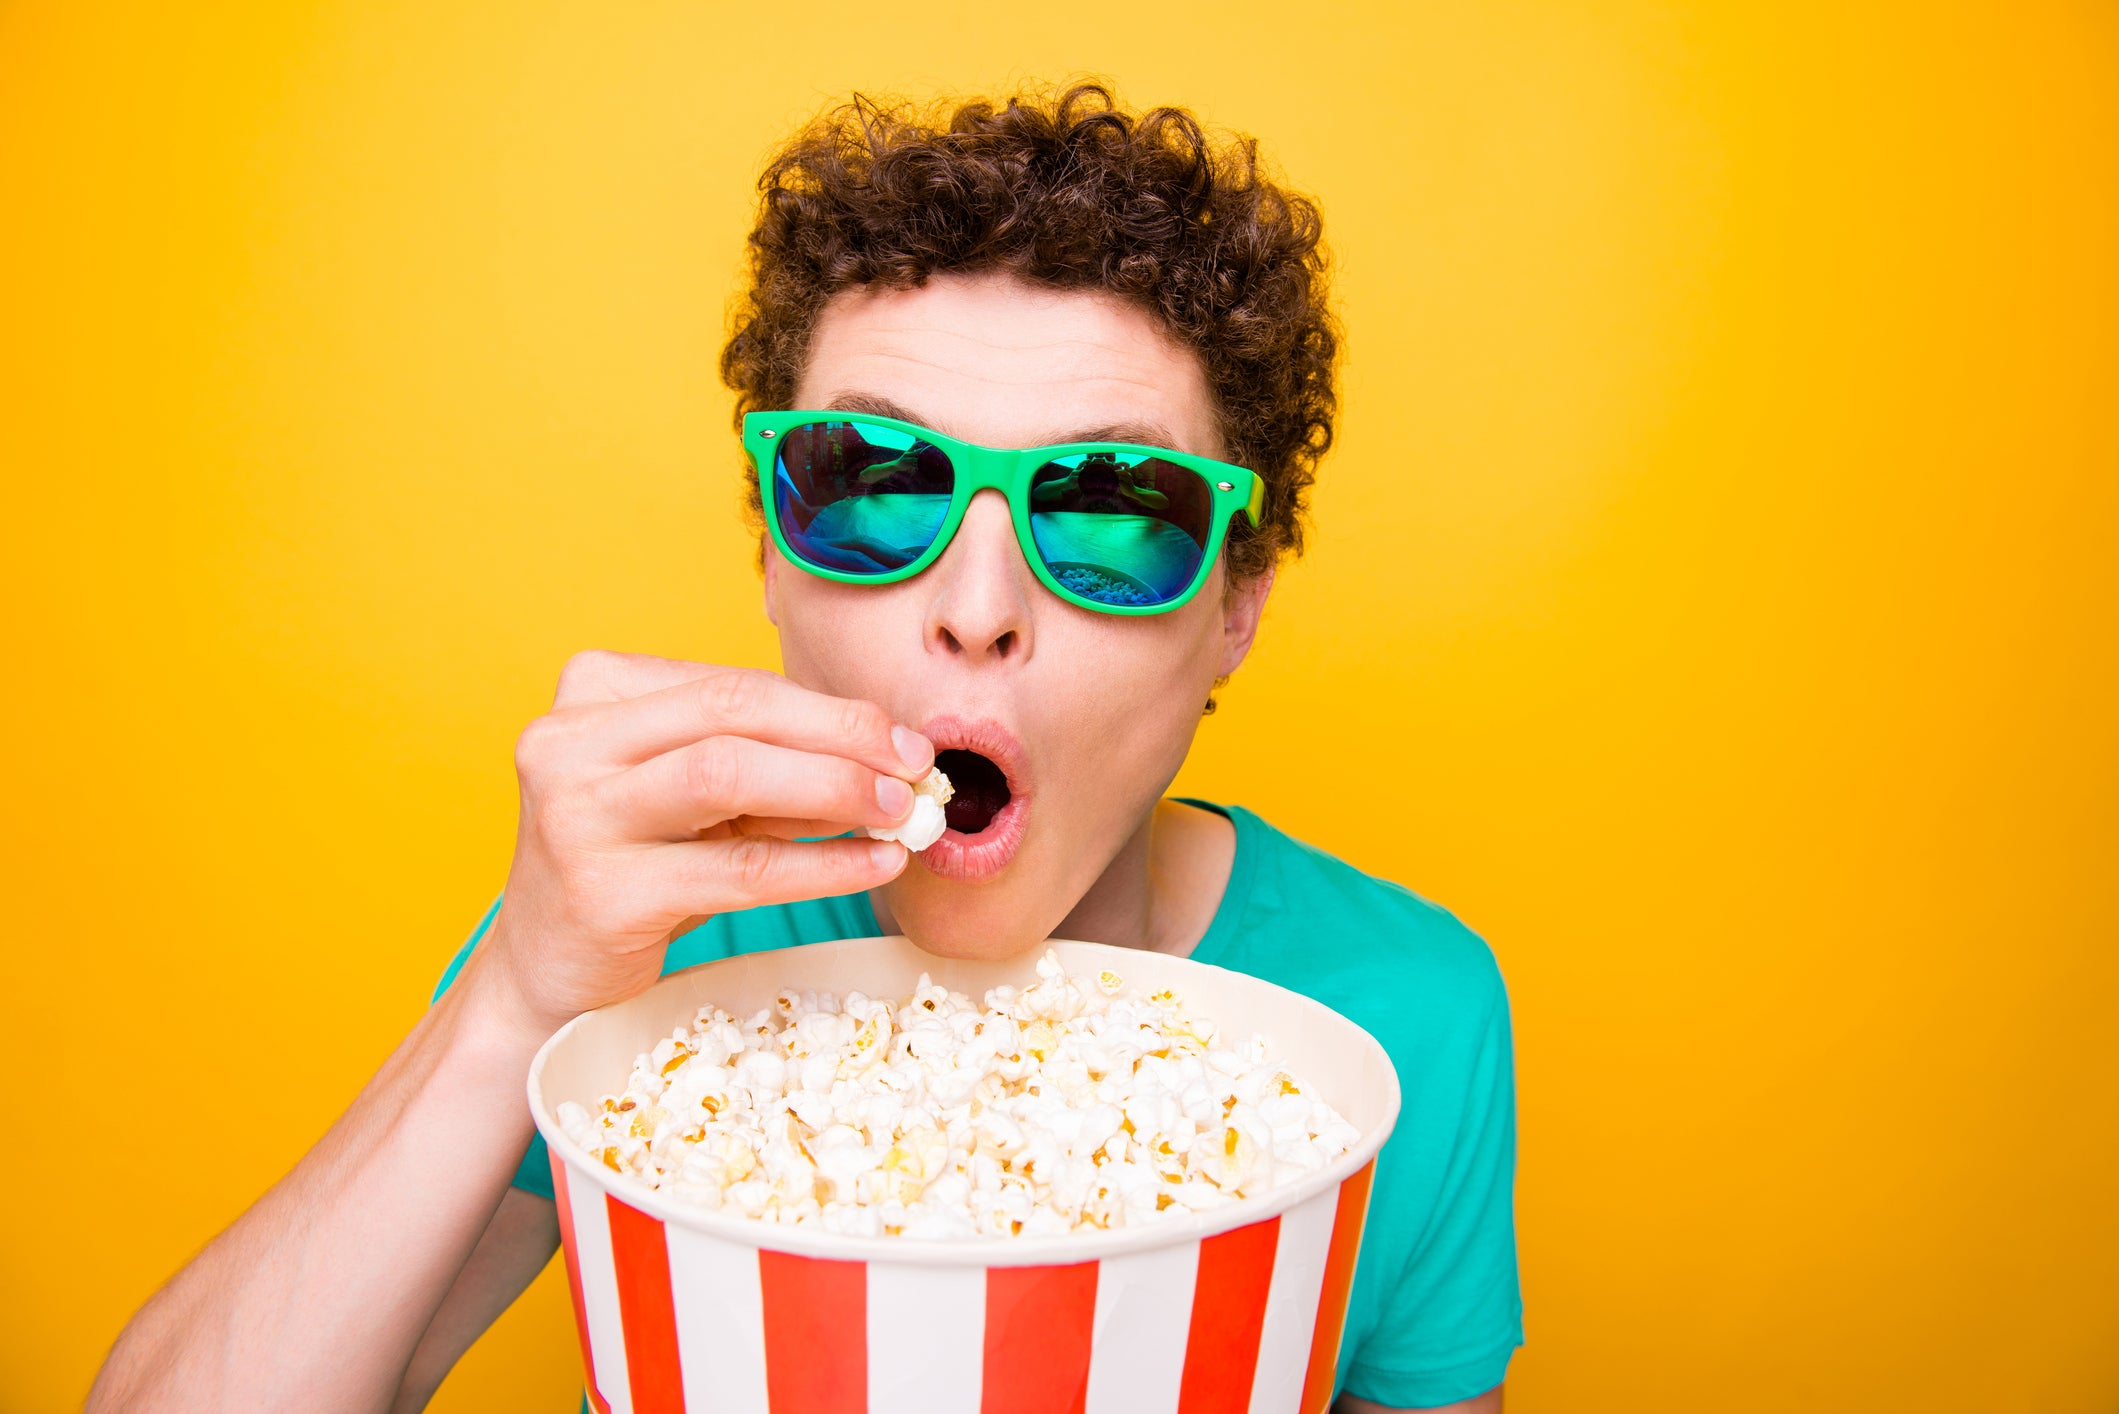 A male teenager in sunglasses wolfing down popcorn.